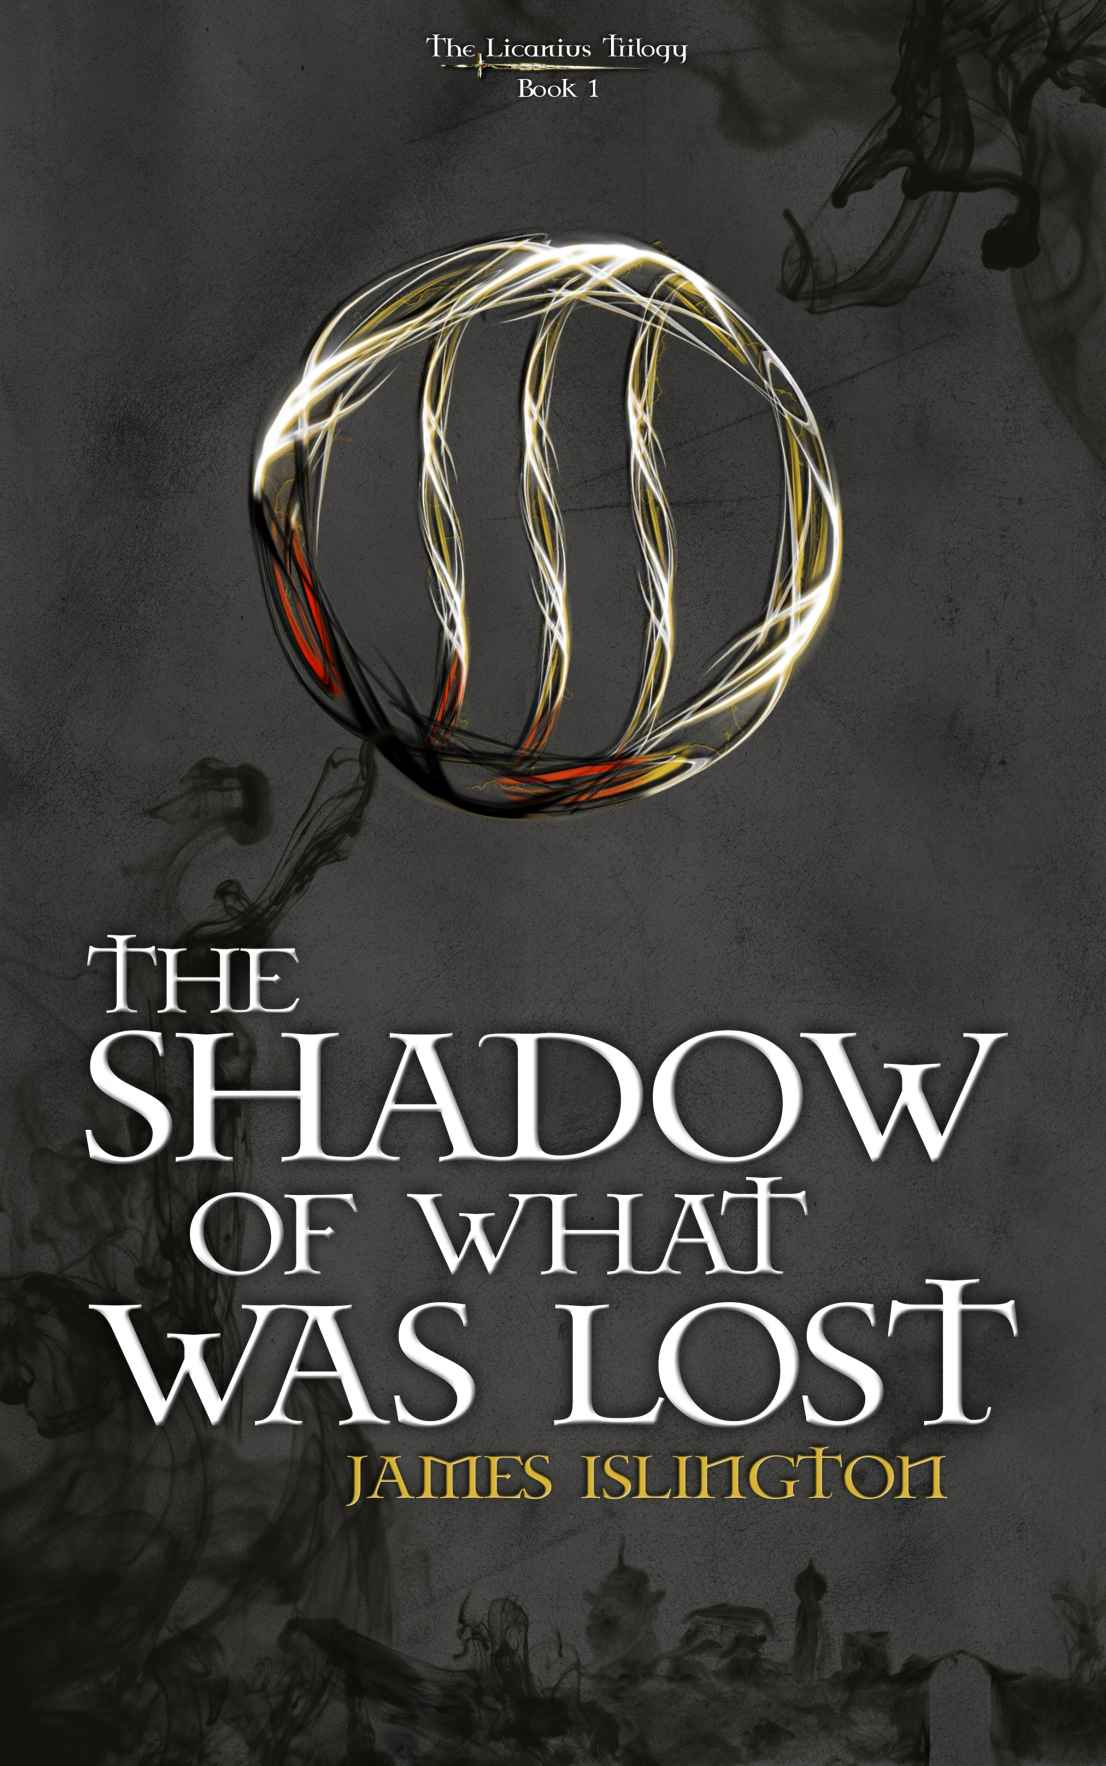 The Shadow Of What Was Lost by James Islington (The Licanius Trilogy #1)